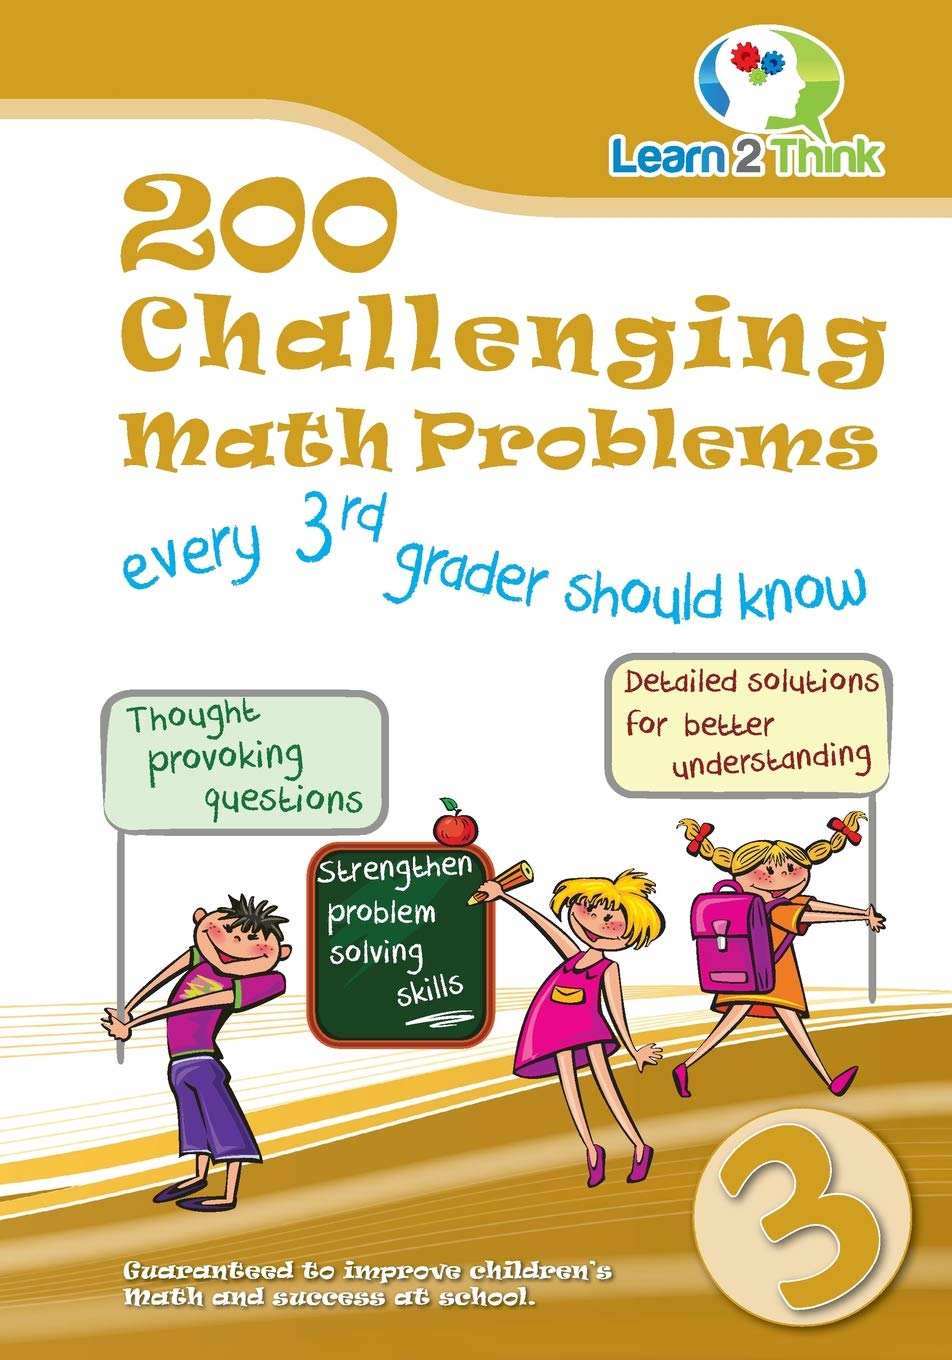 Download 200 Challenging Math Problems every 3rd grader should know (Volume 3) pdf